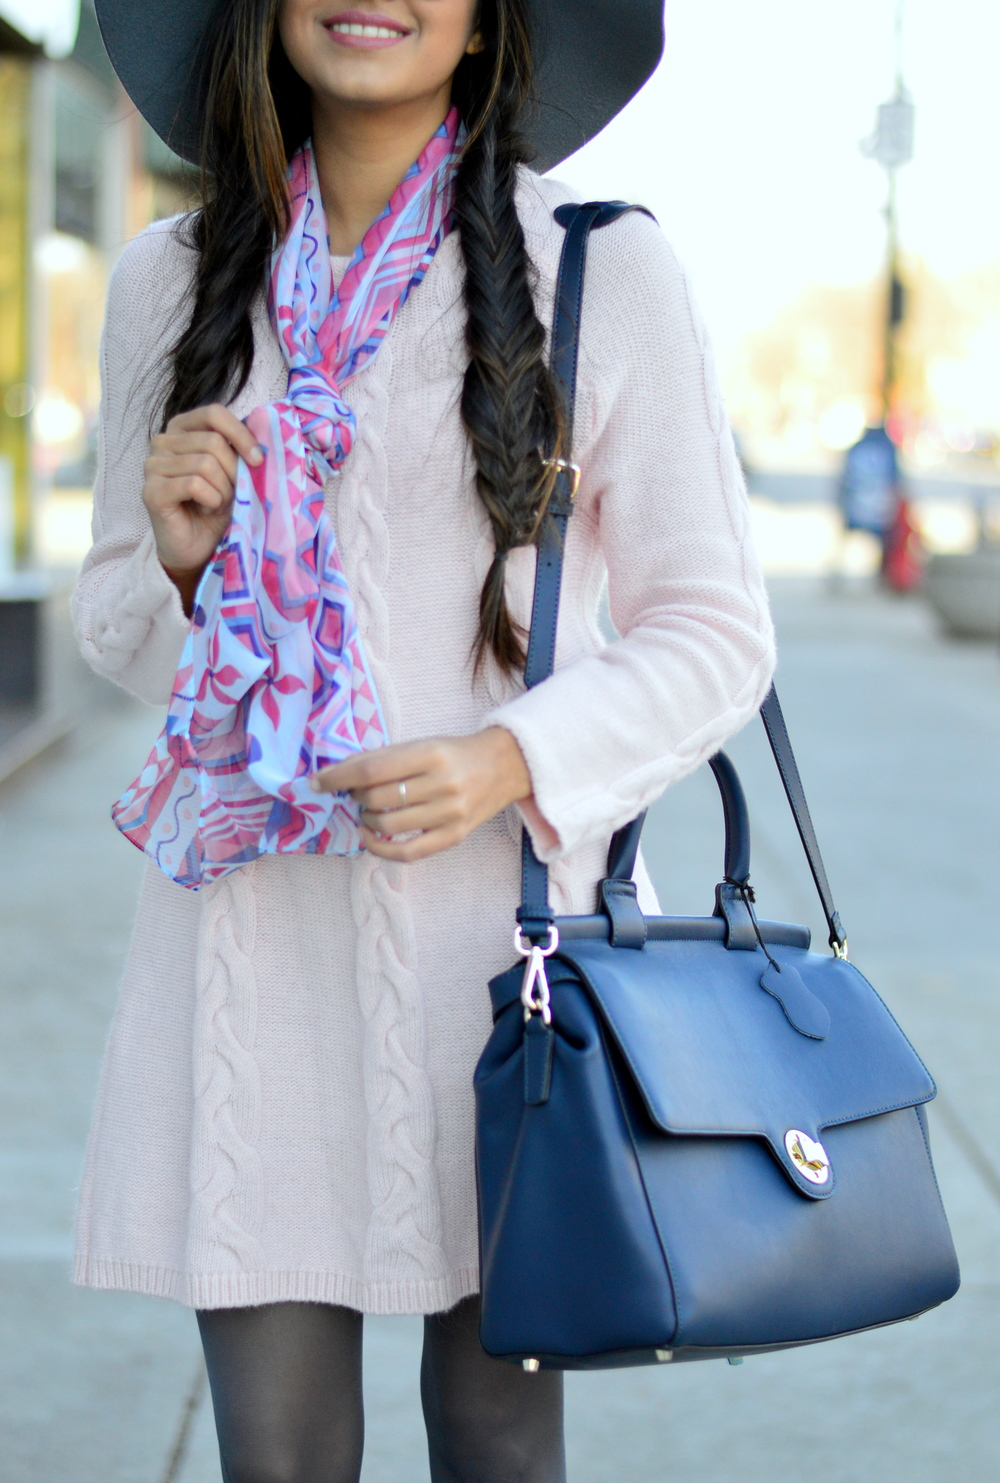 blush-pink-transition-spring-style-blogger-outfit